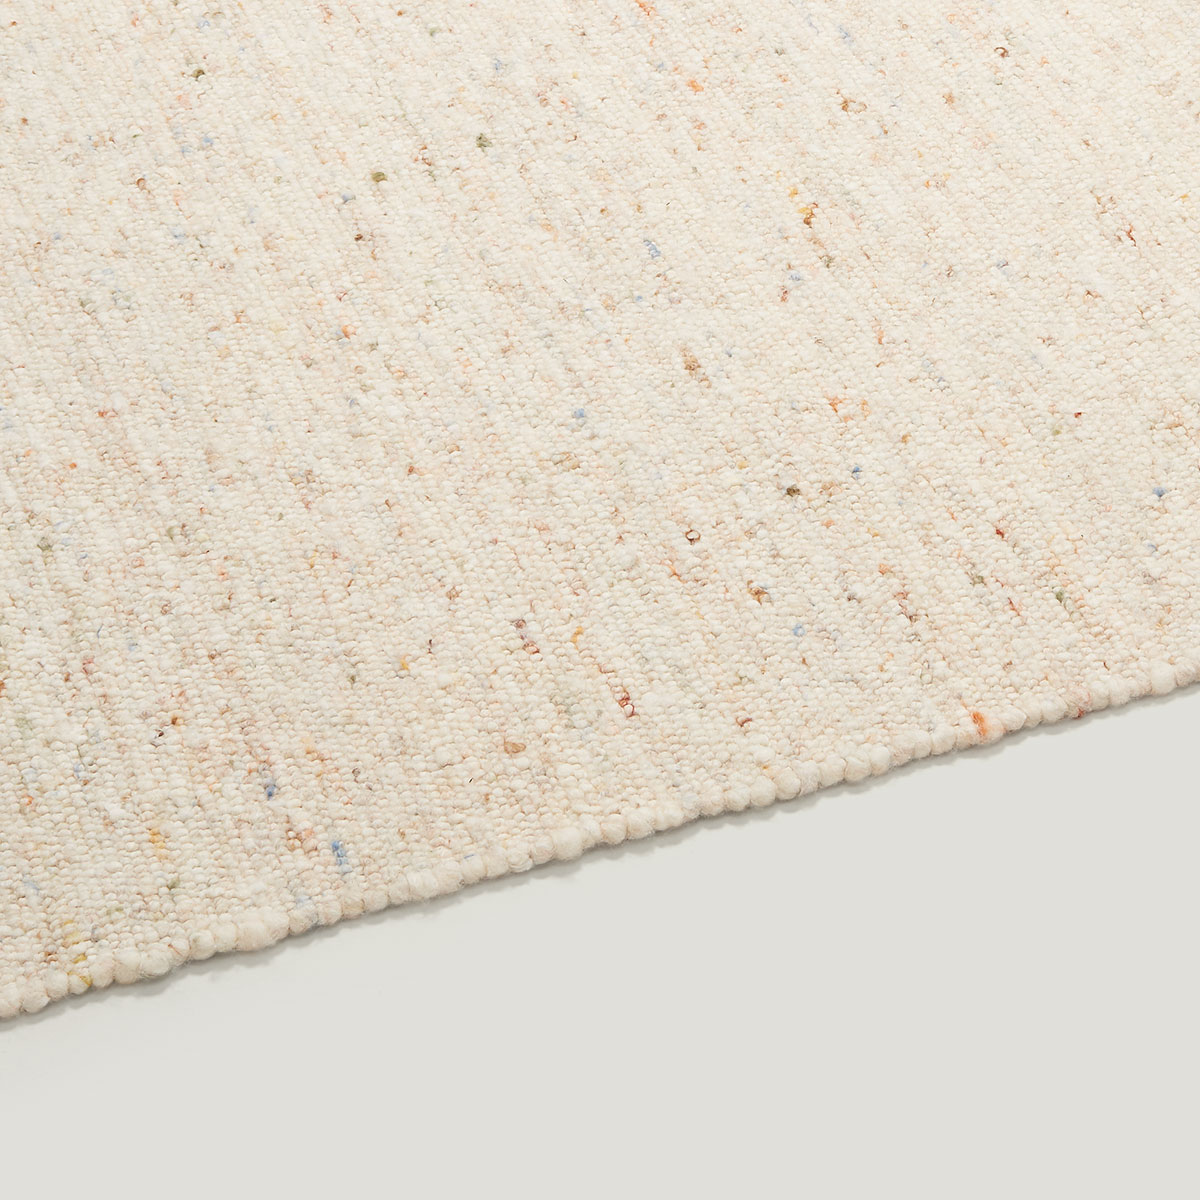 ONN wool rug multi natural